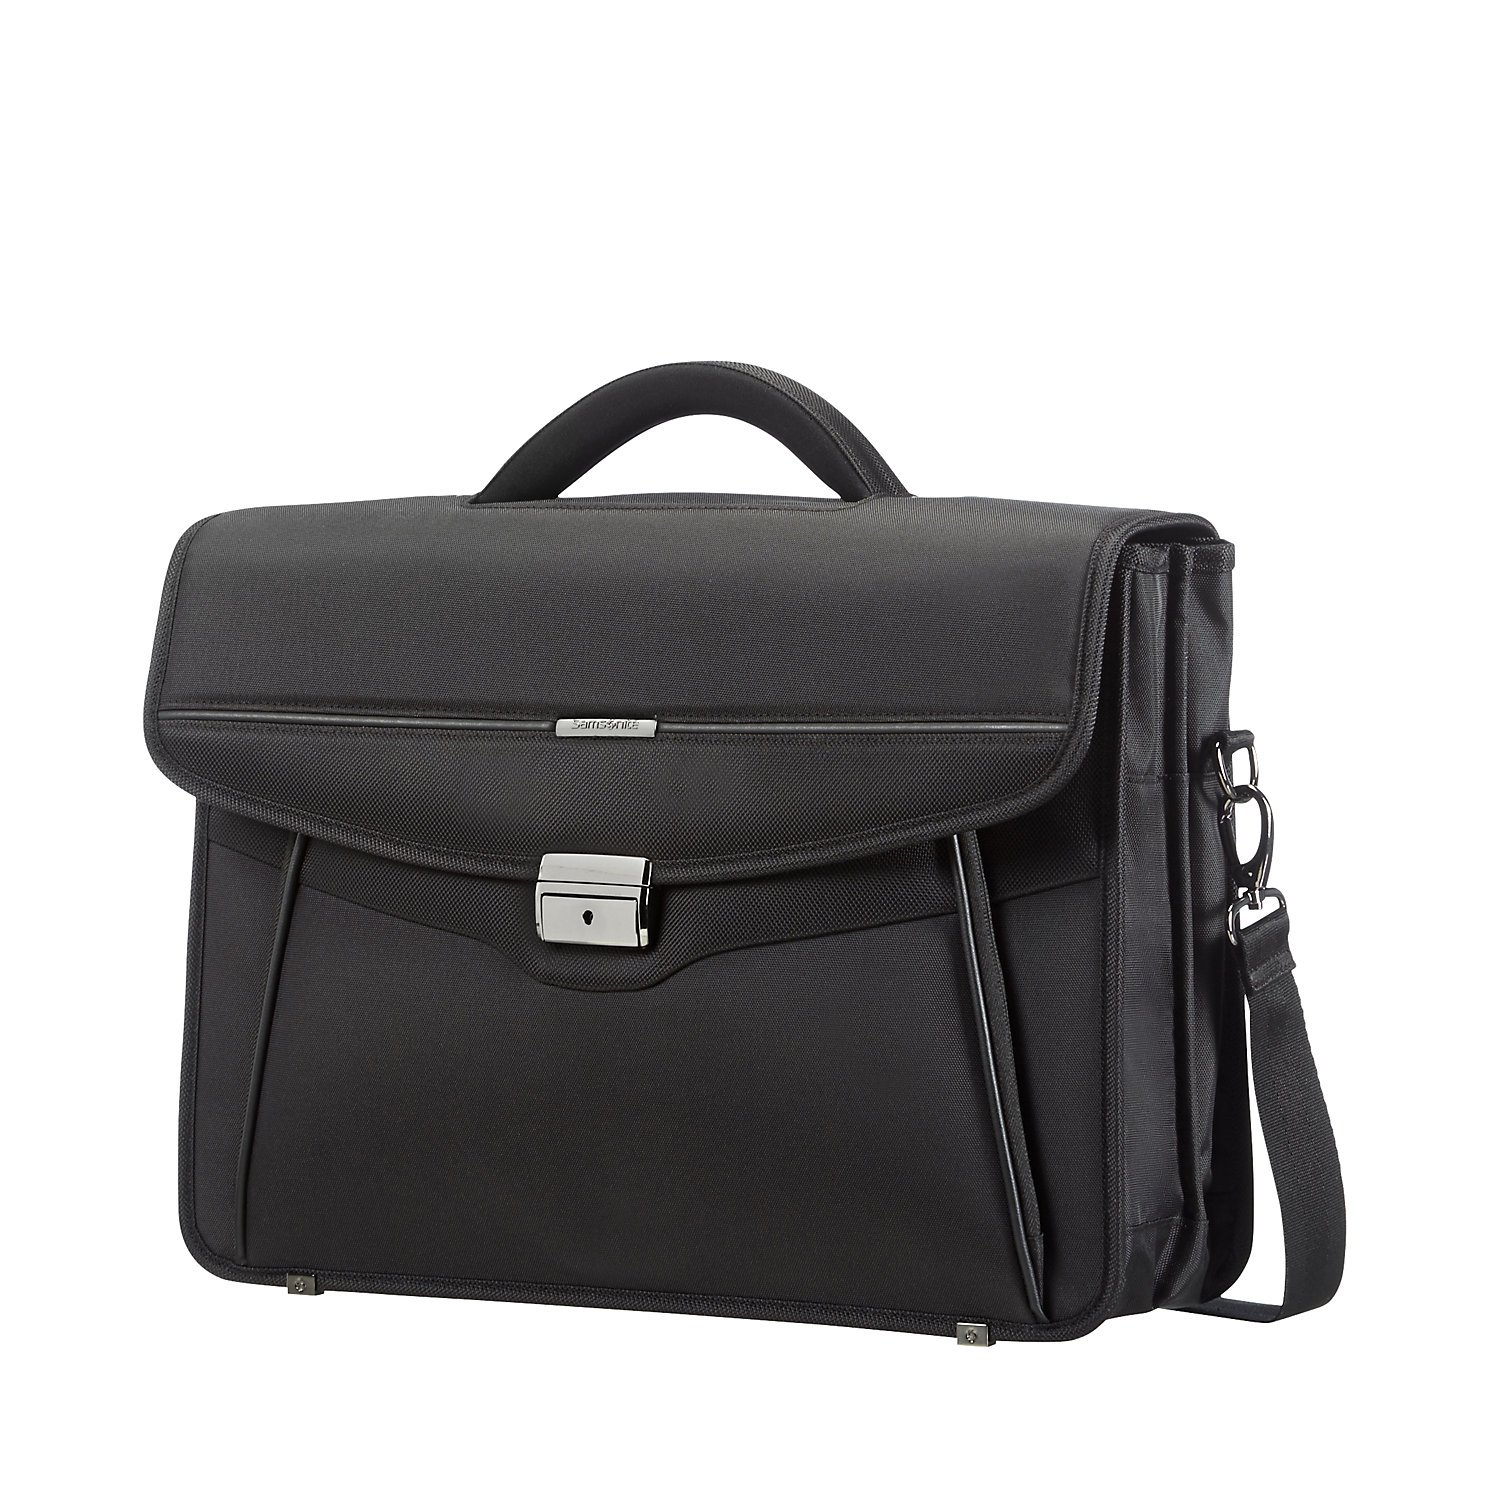 Samsonite Briefcase 2 Gussets 15.6 (Black) -Desklite  Aktentasche 67771-1041